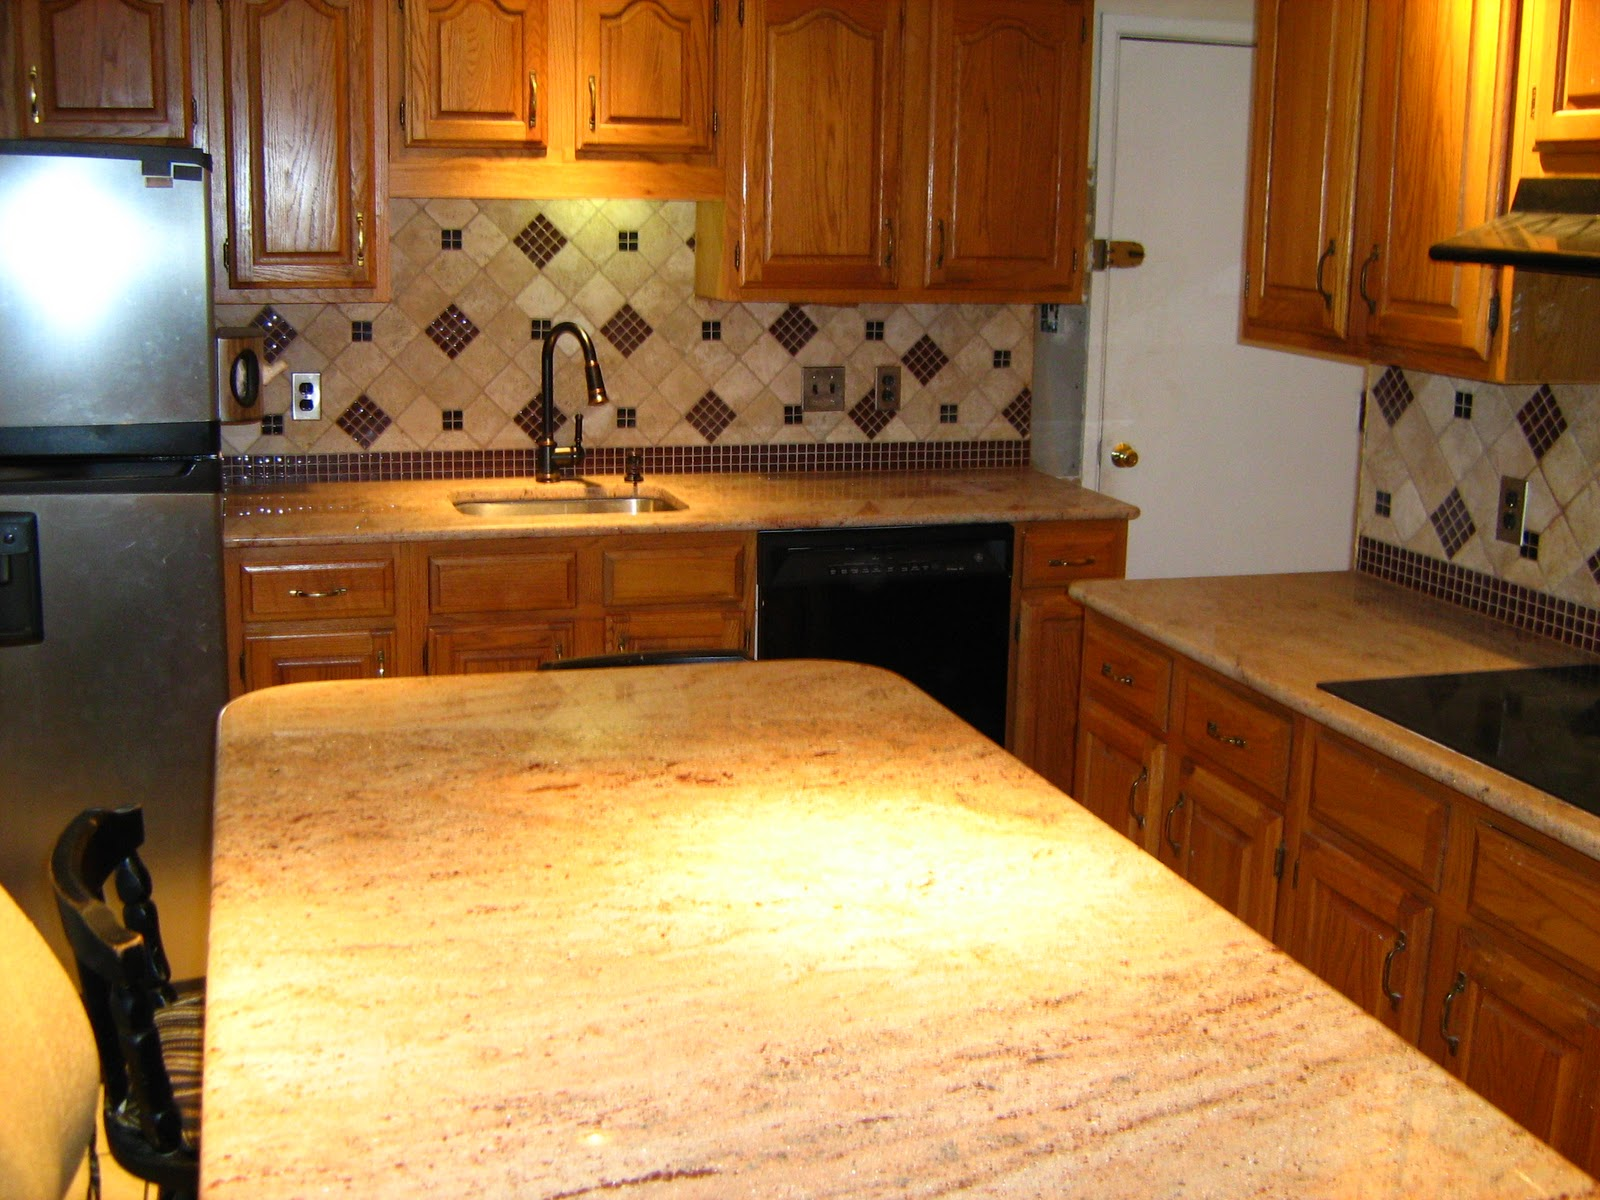 Glass Backsplash with Granite Countertops